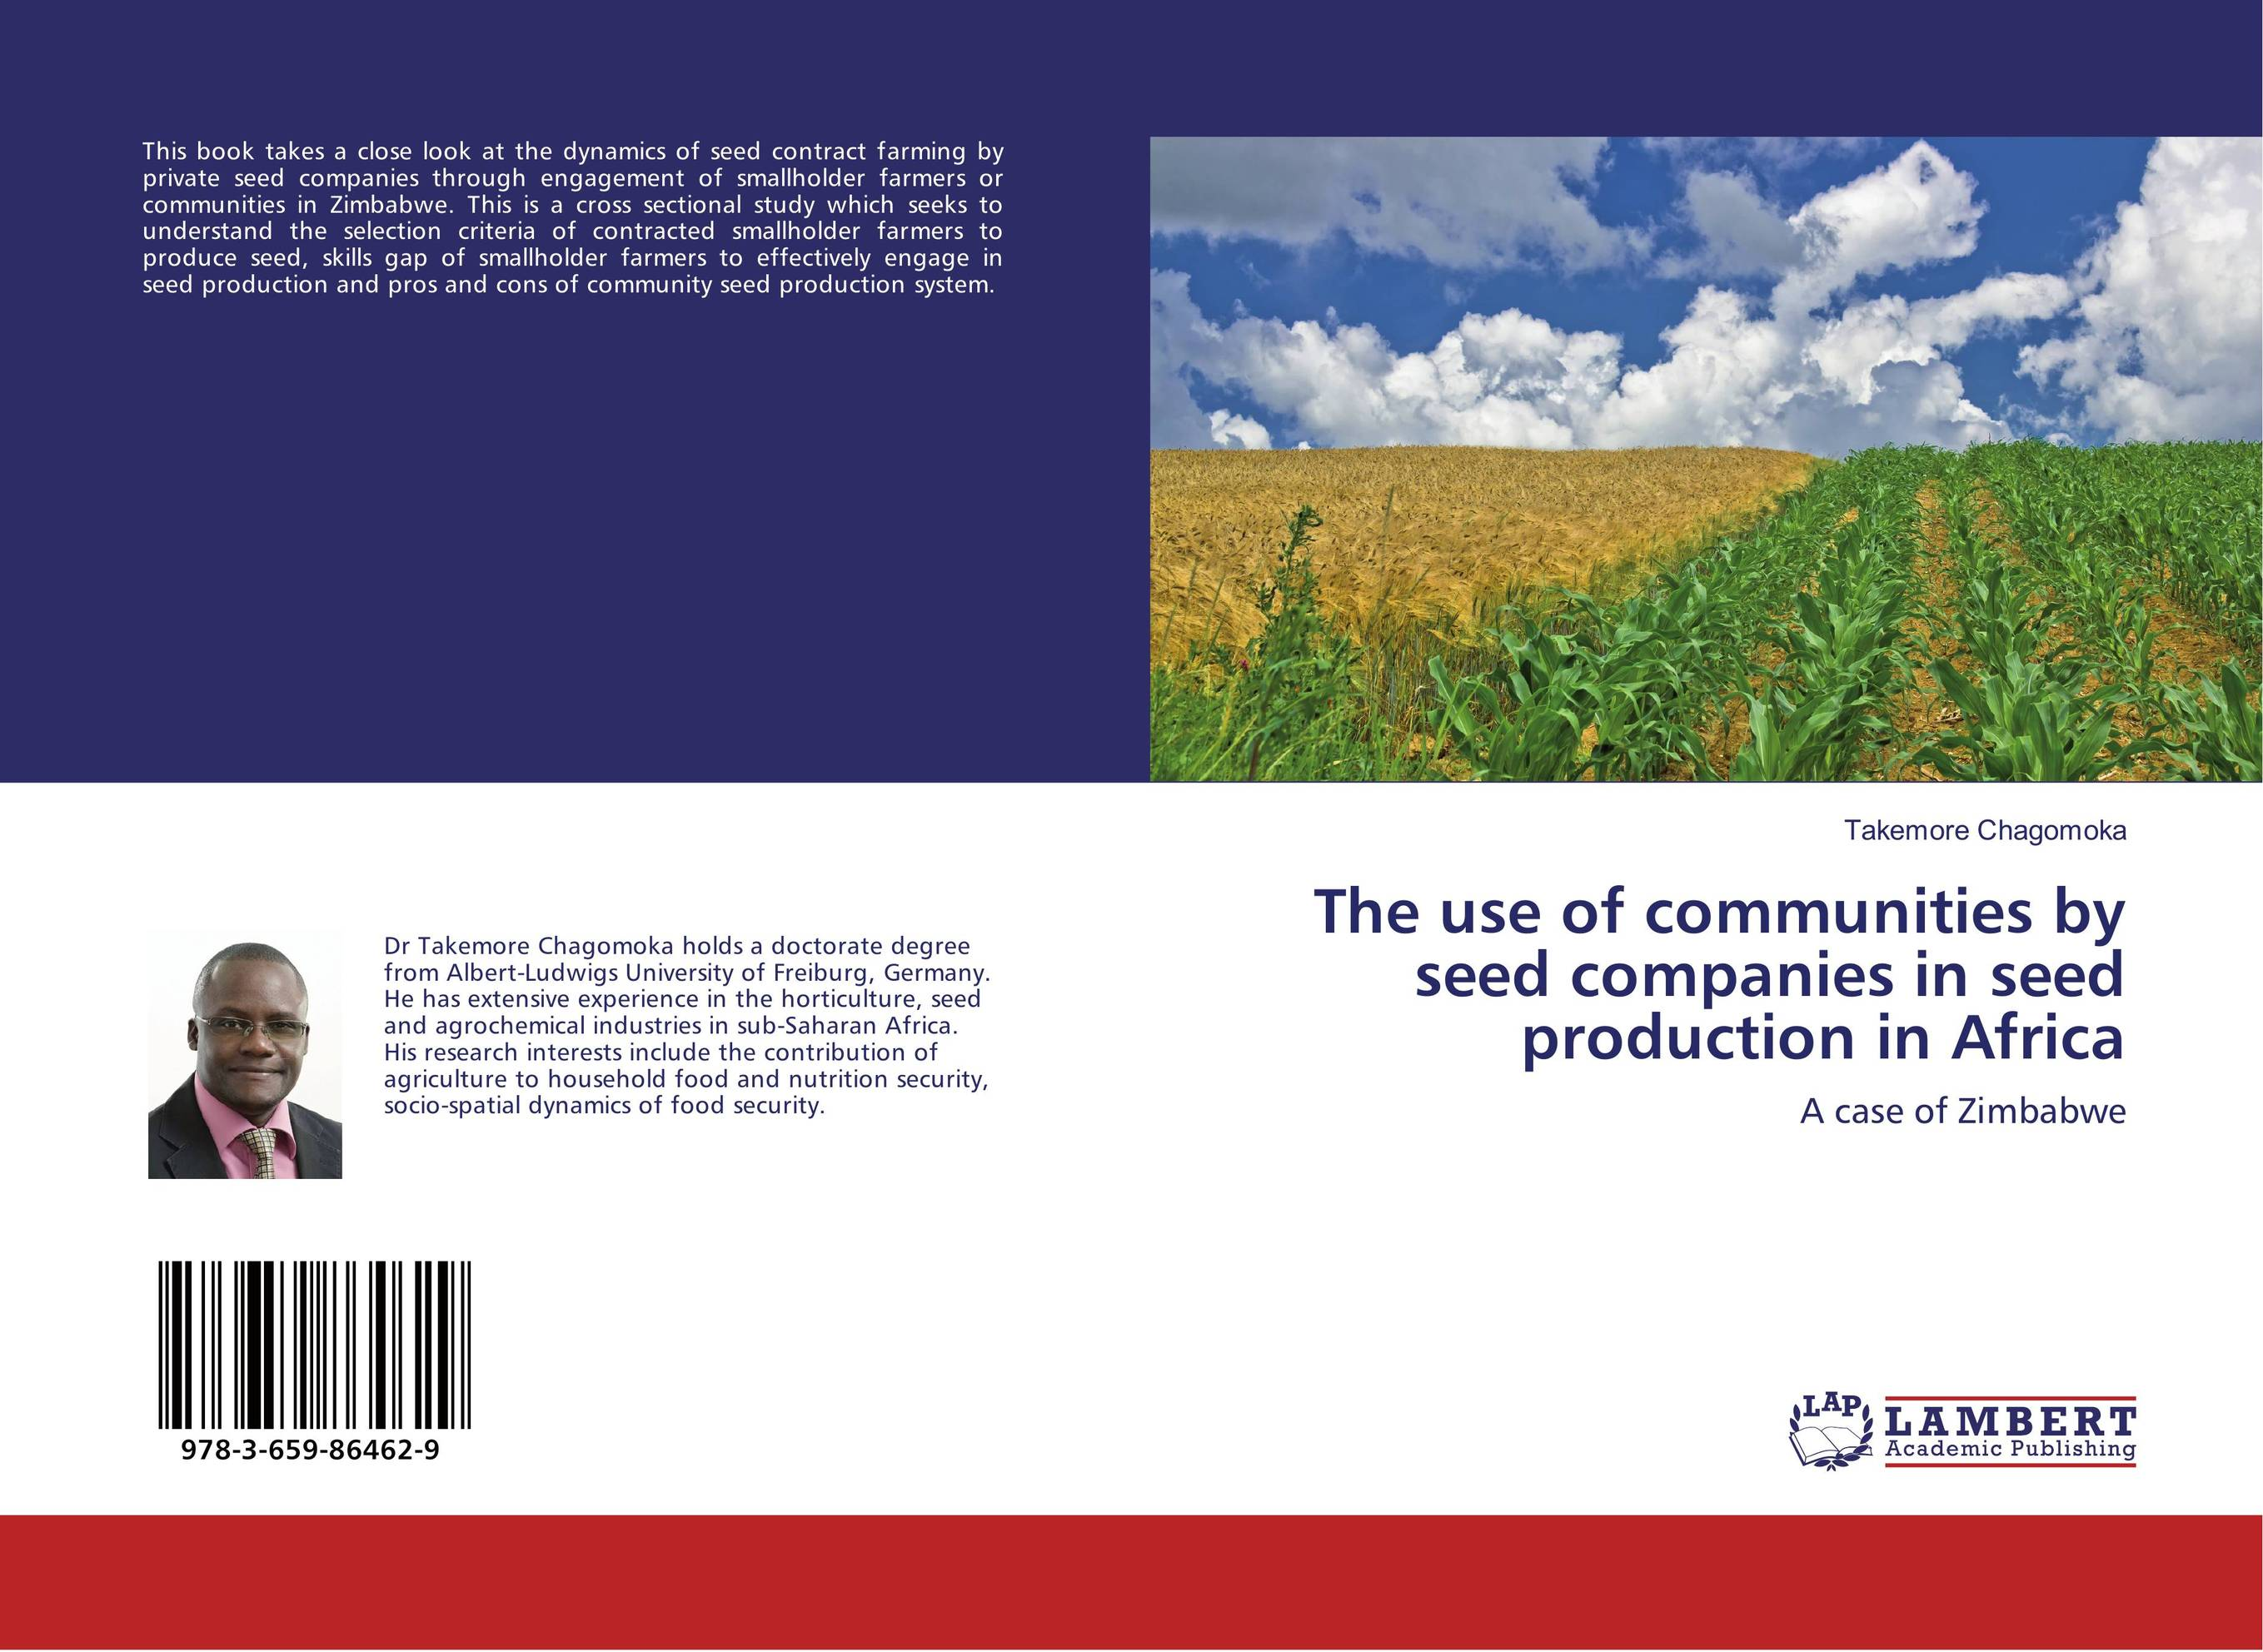 The use of communities by seed companies in seed production in Africa hag seed